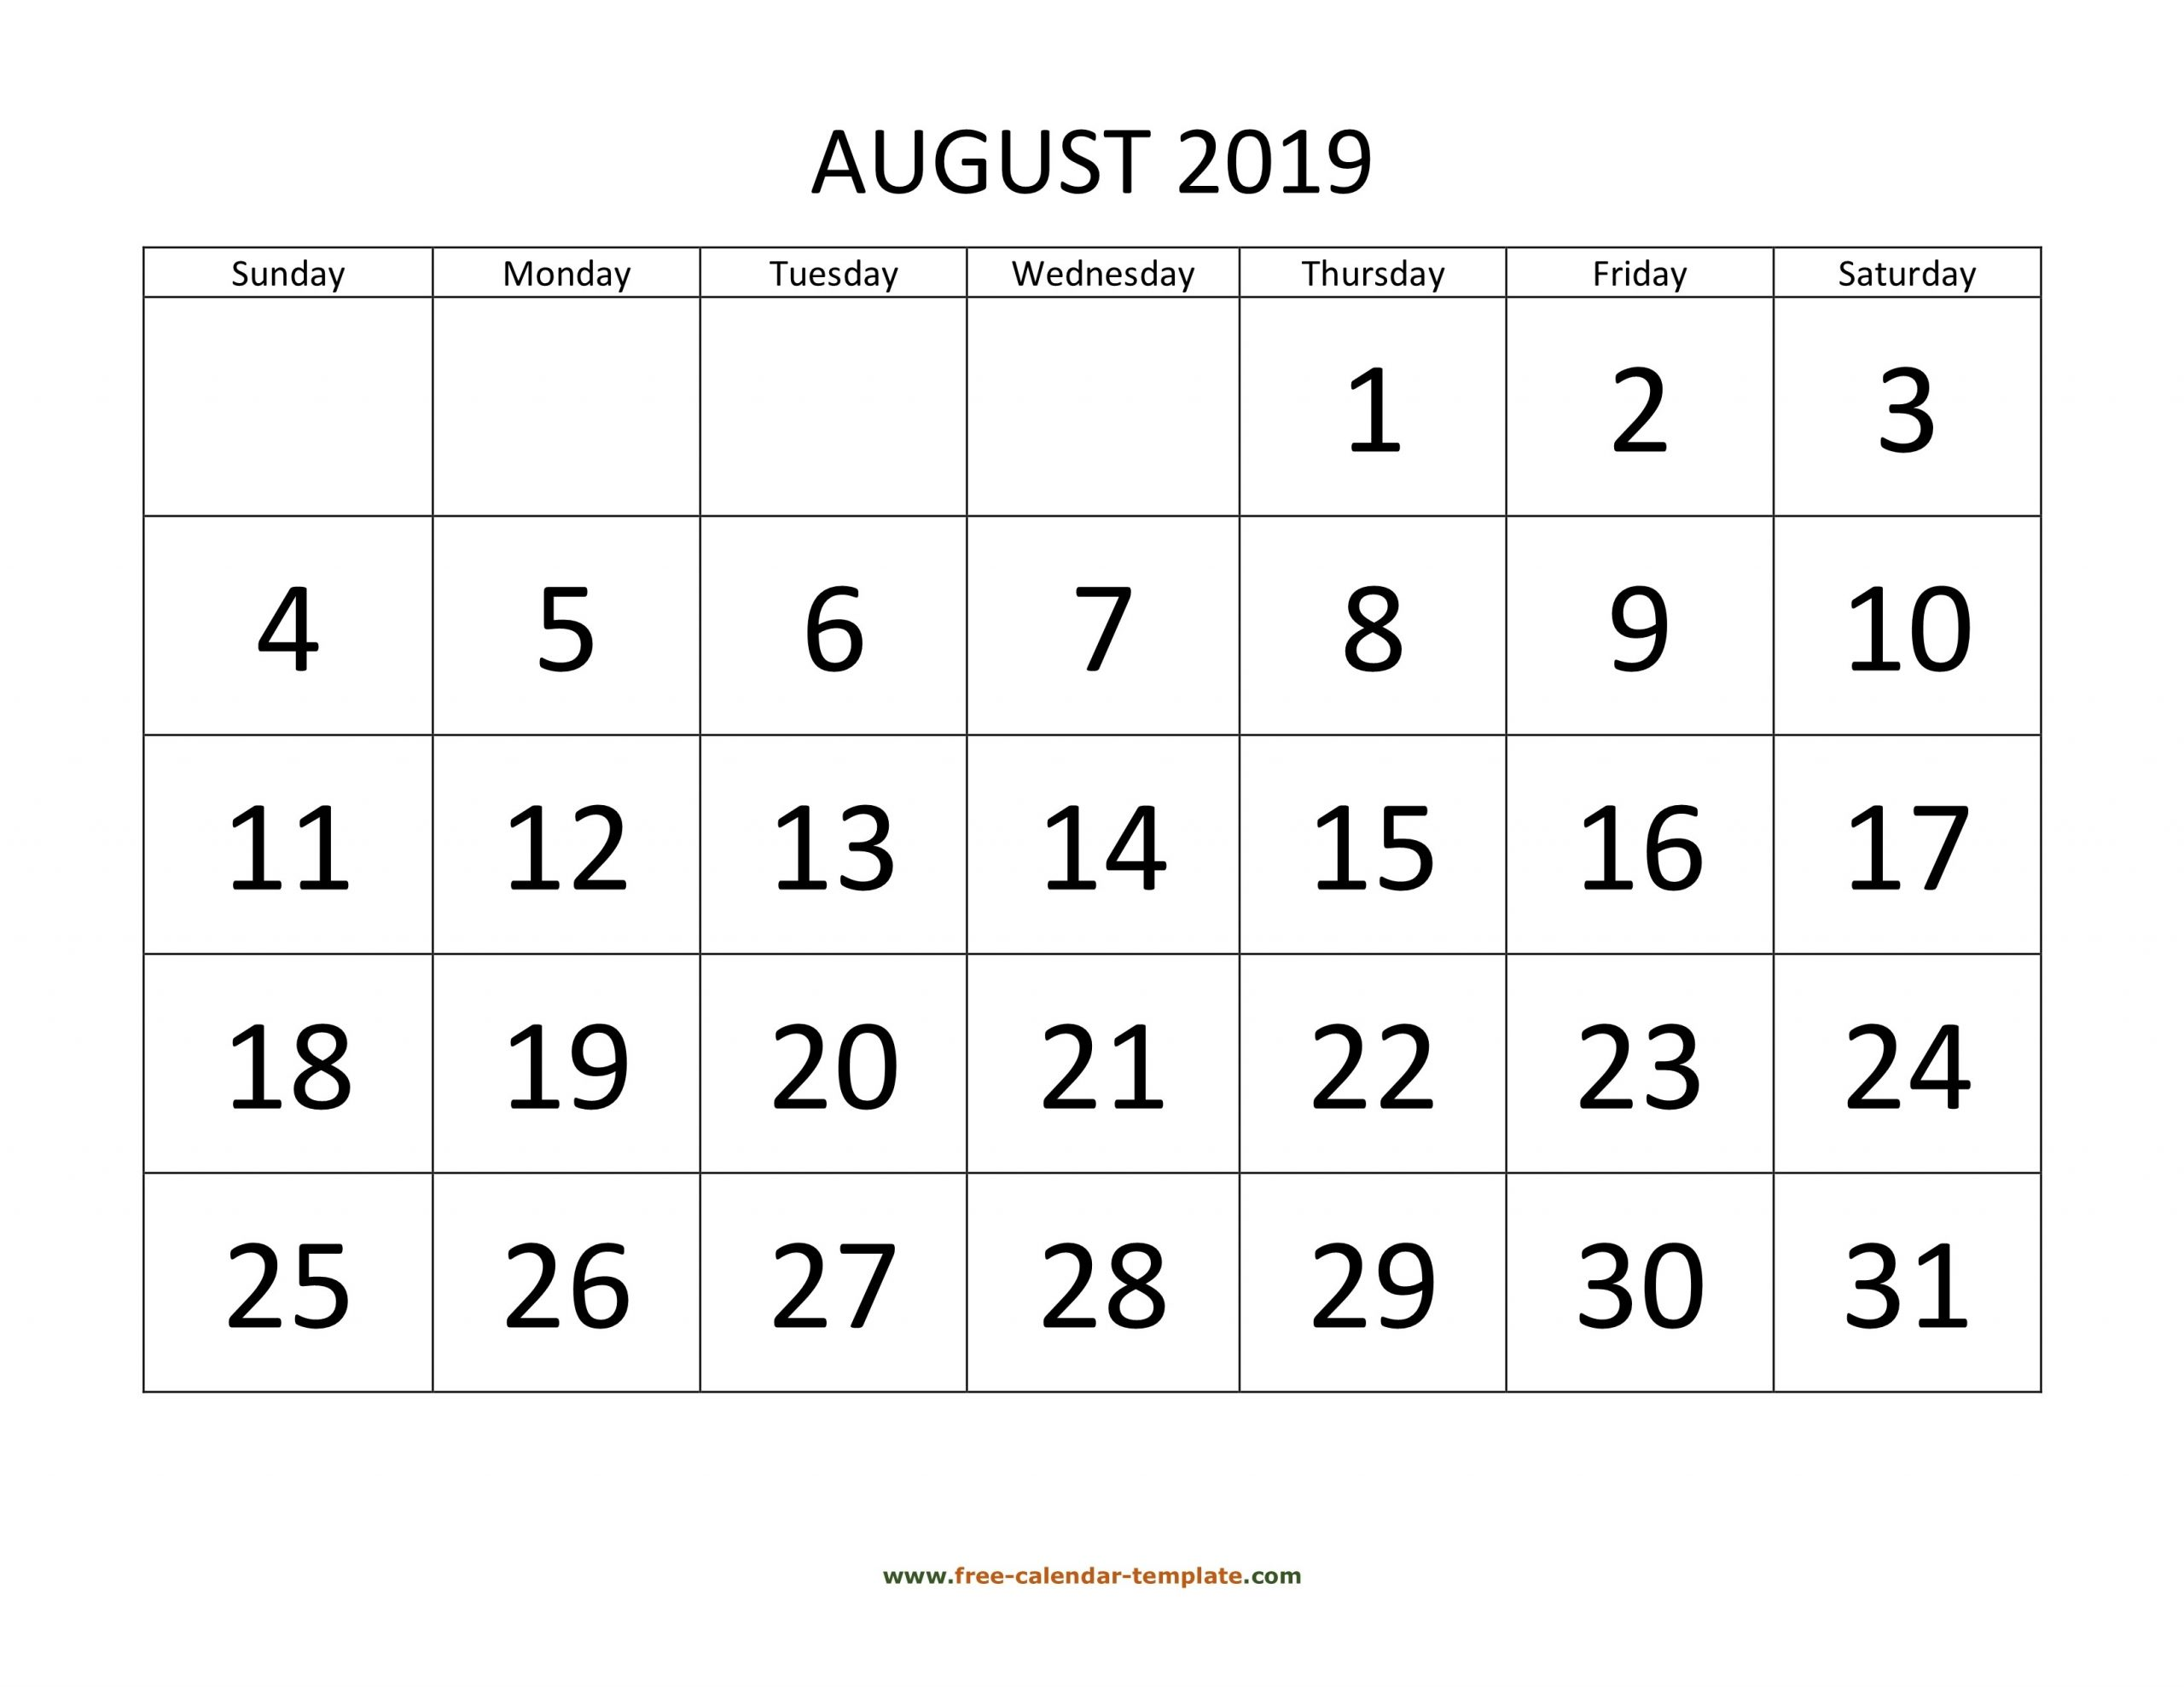 August 2019 Free Calendar Tempplate | Free-Calendar-Template-Sepetember 2021 Calendar With Big Numbers